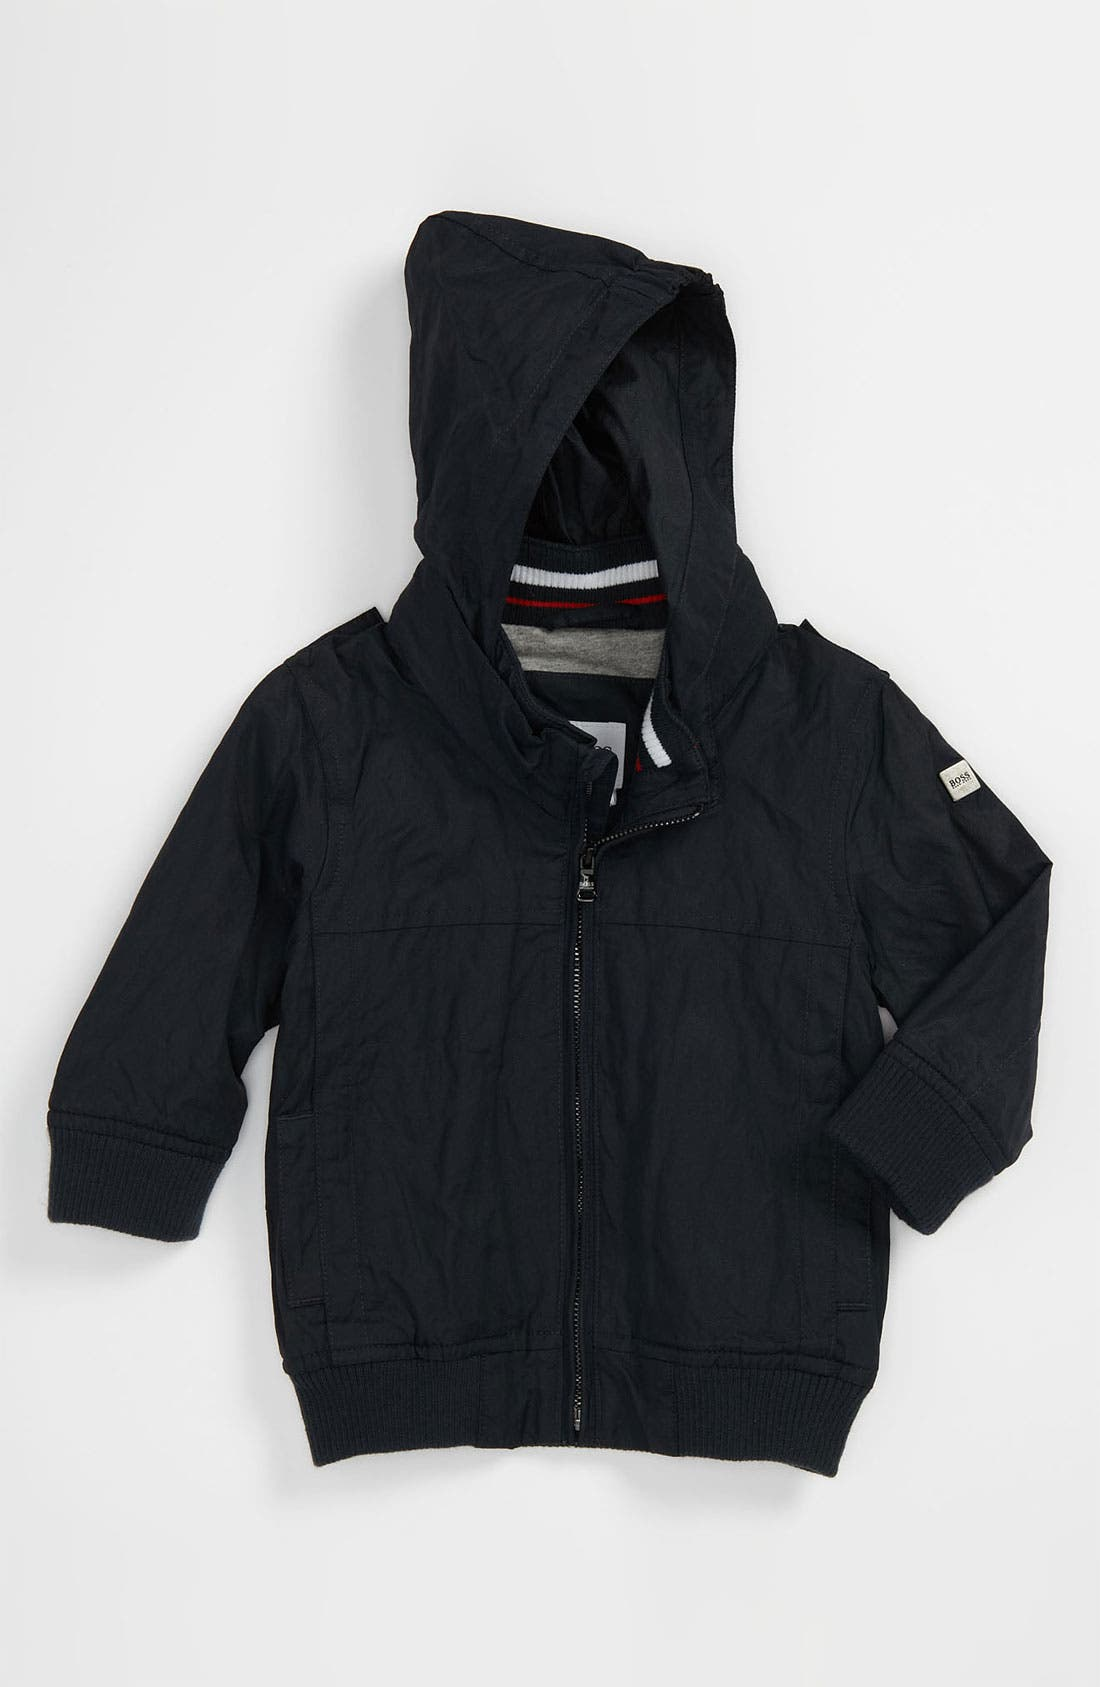 Main Image - BOSS Kidswear Twill Jacket (Baby)